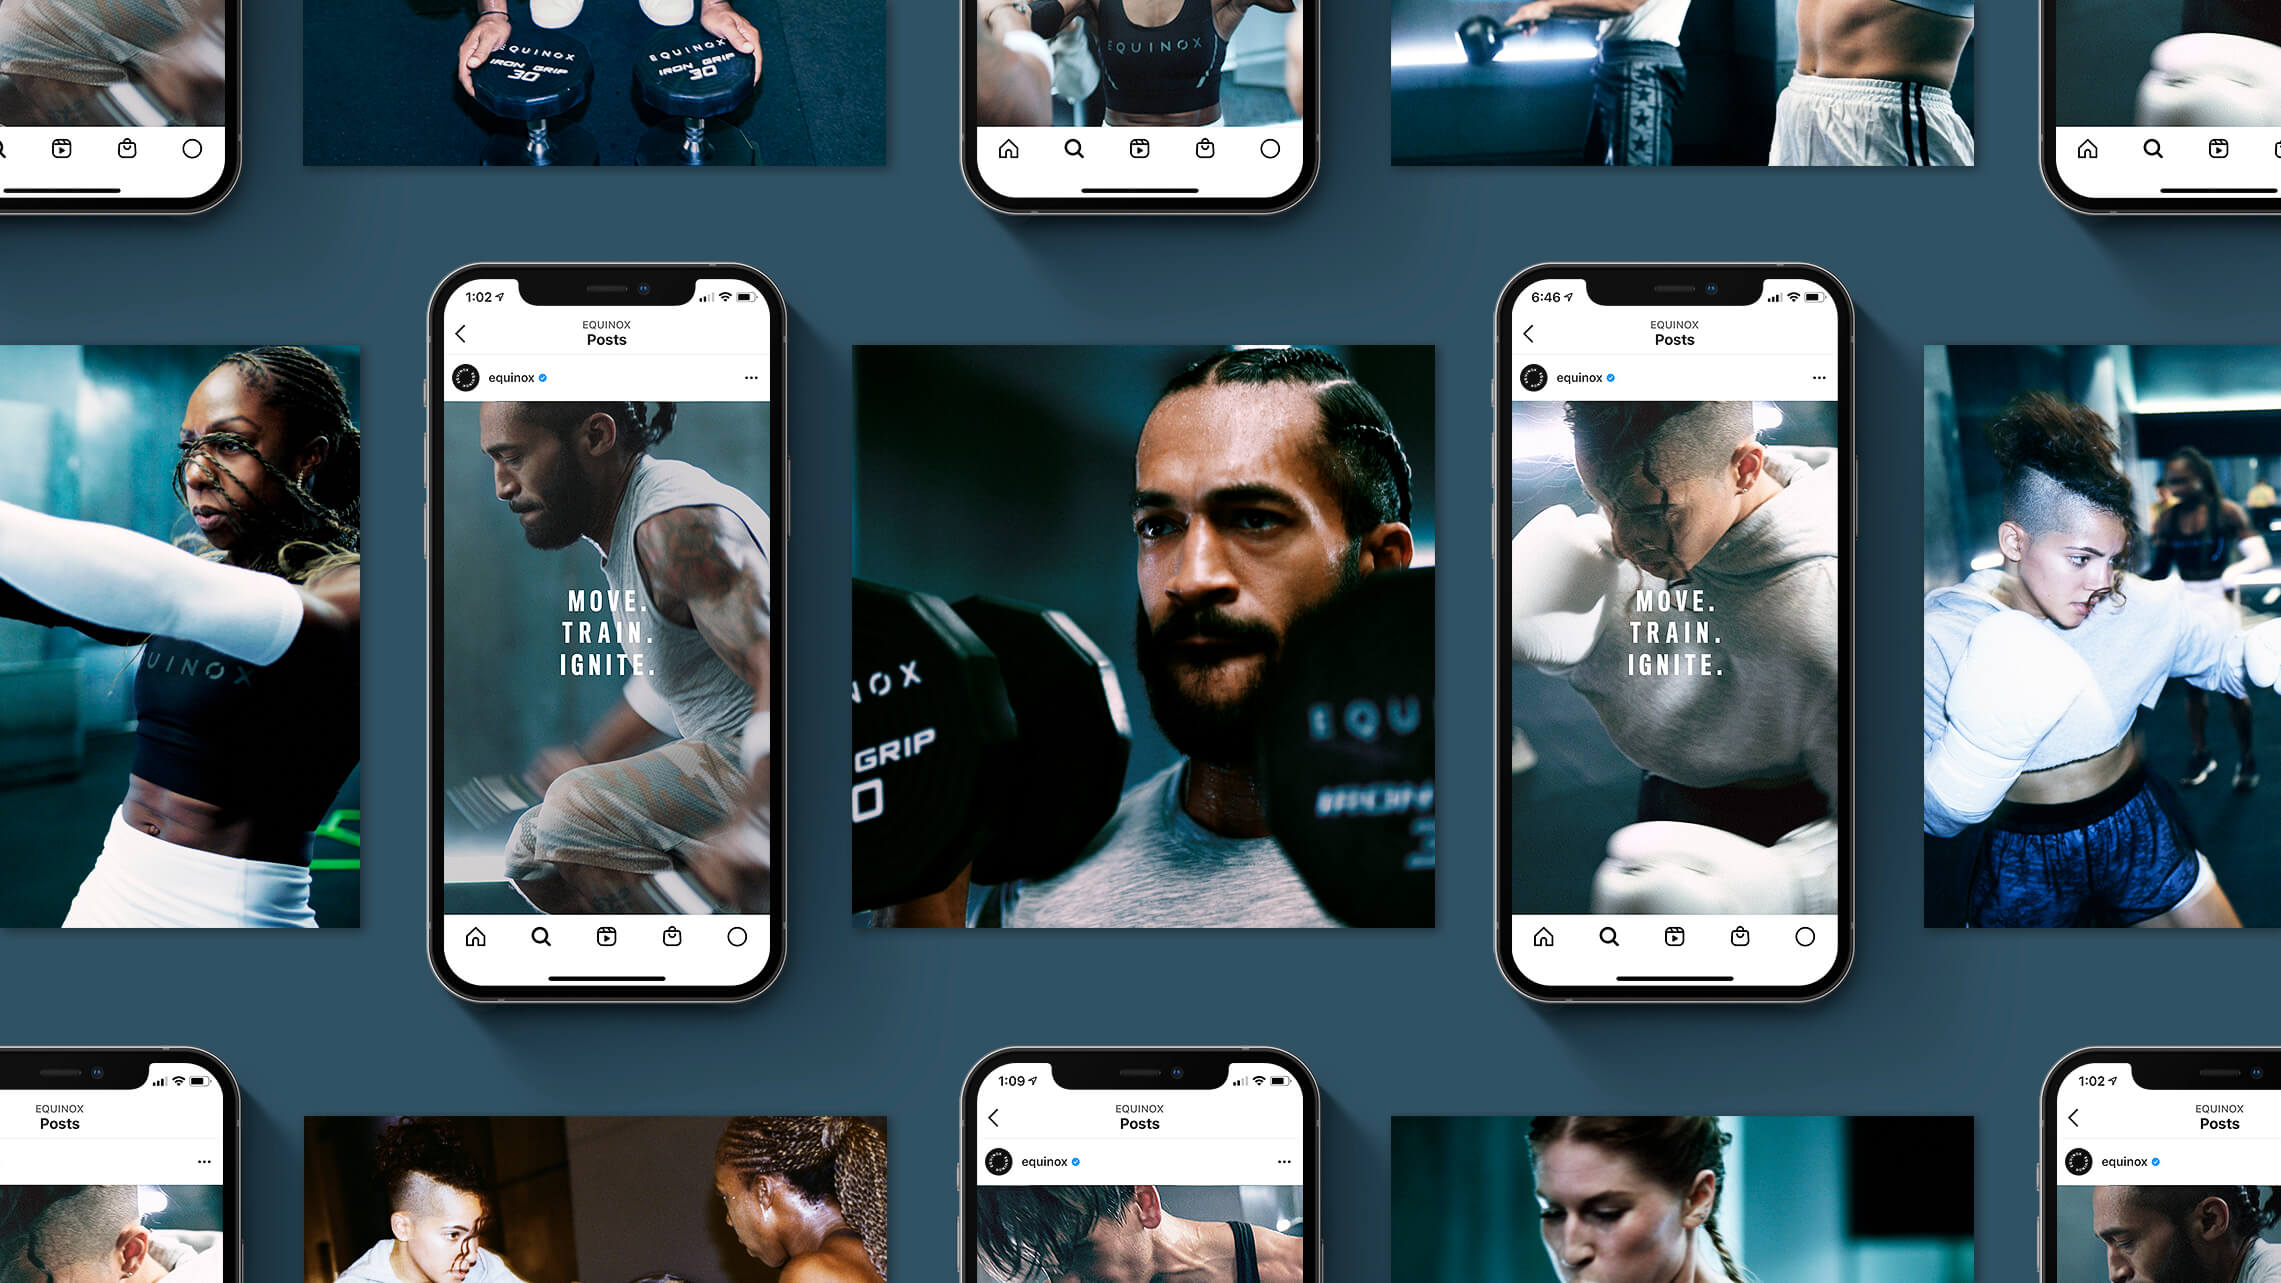 """A series of mobile phone screenshots featuring Instagram posts from the account """"@equinox"""". Images of various athletes are featured with the words """"Move. Train. Ignite"""" superimposed over them."""